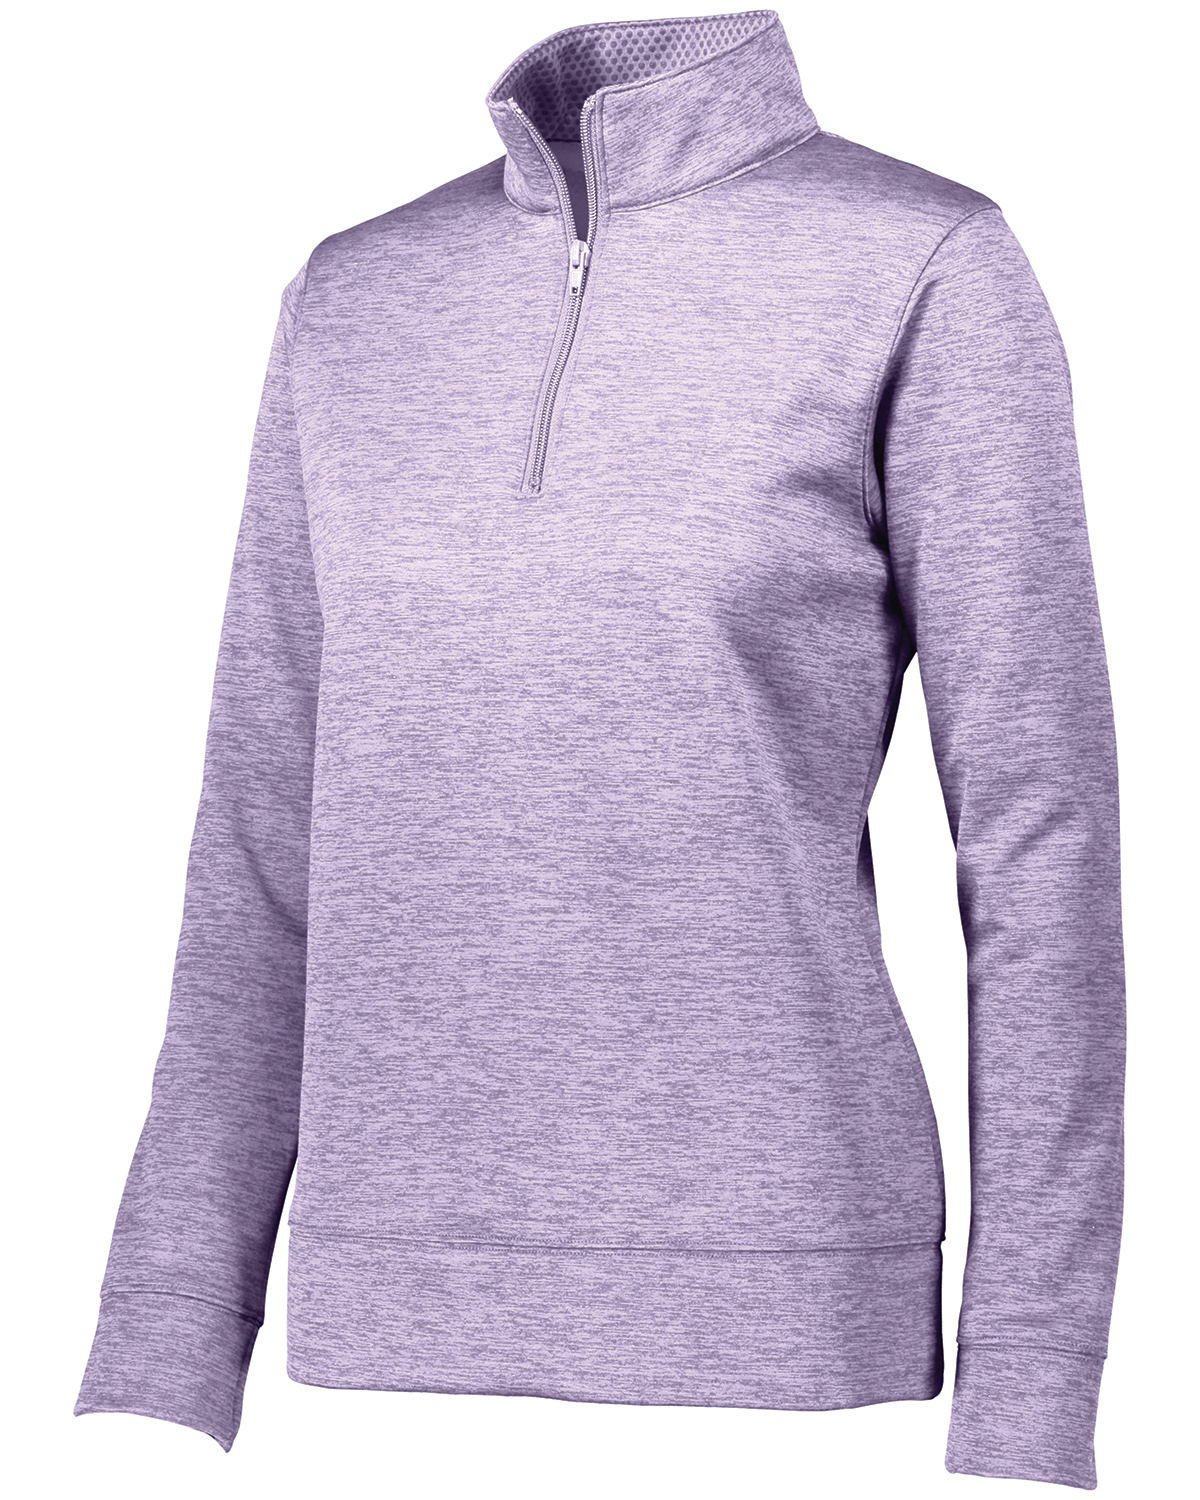 Augusta Drop Ship 2911 - Ladies Stoked Pullover